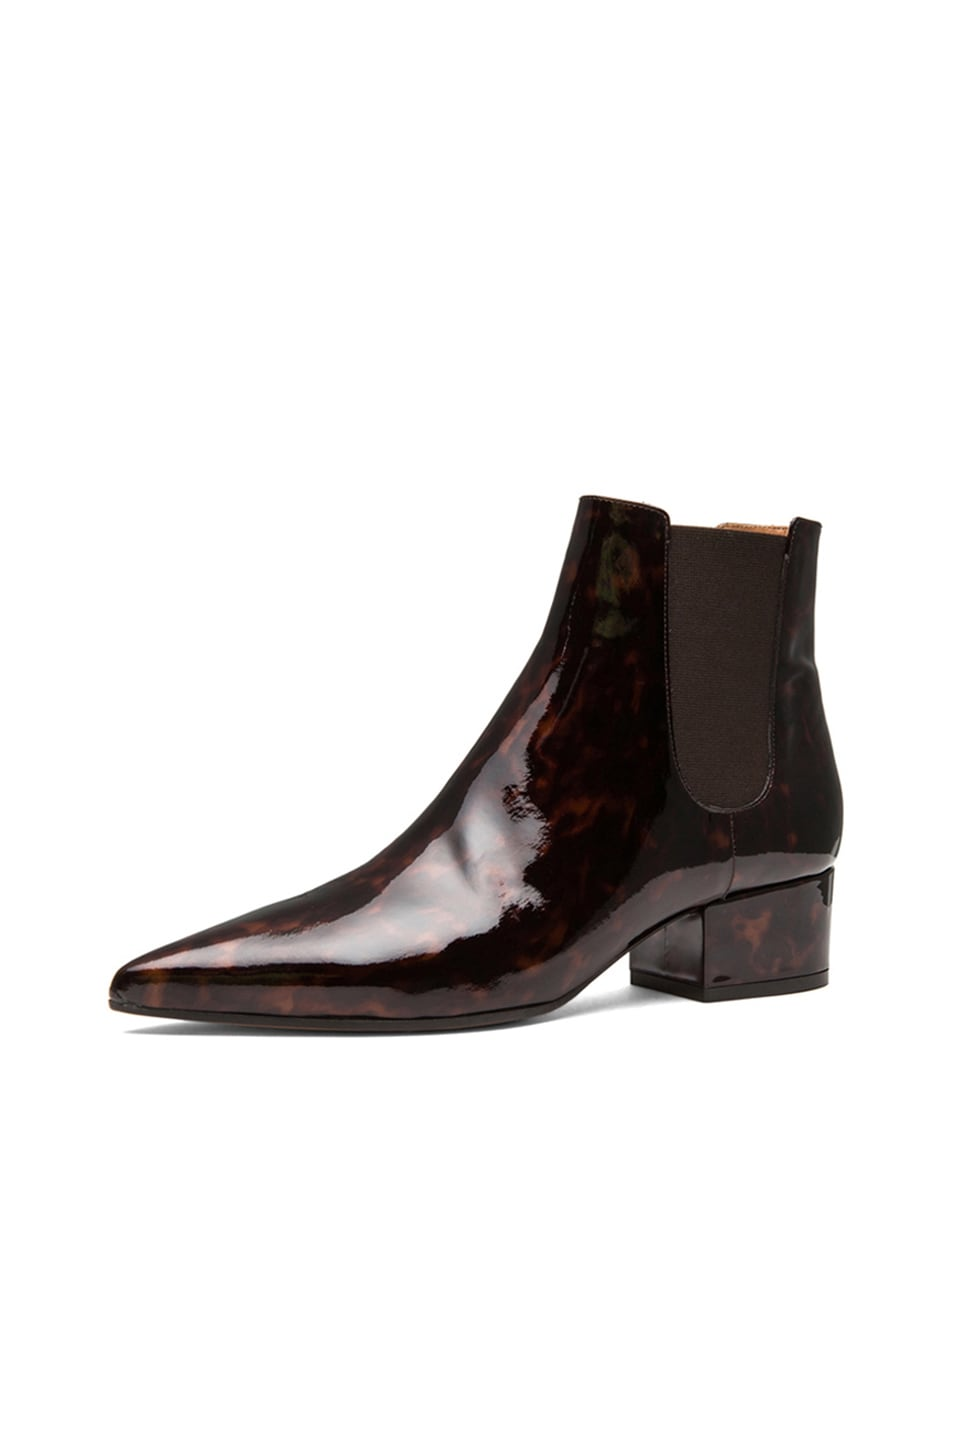 Image 2 of Maison Margiela Printed Patent Leather Chelsea Boots in Turtle